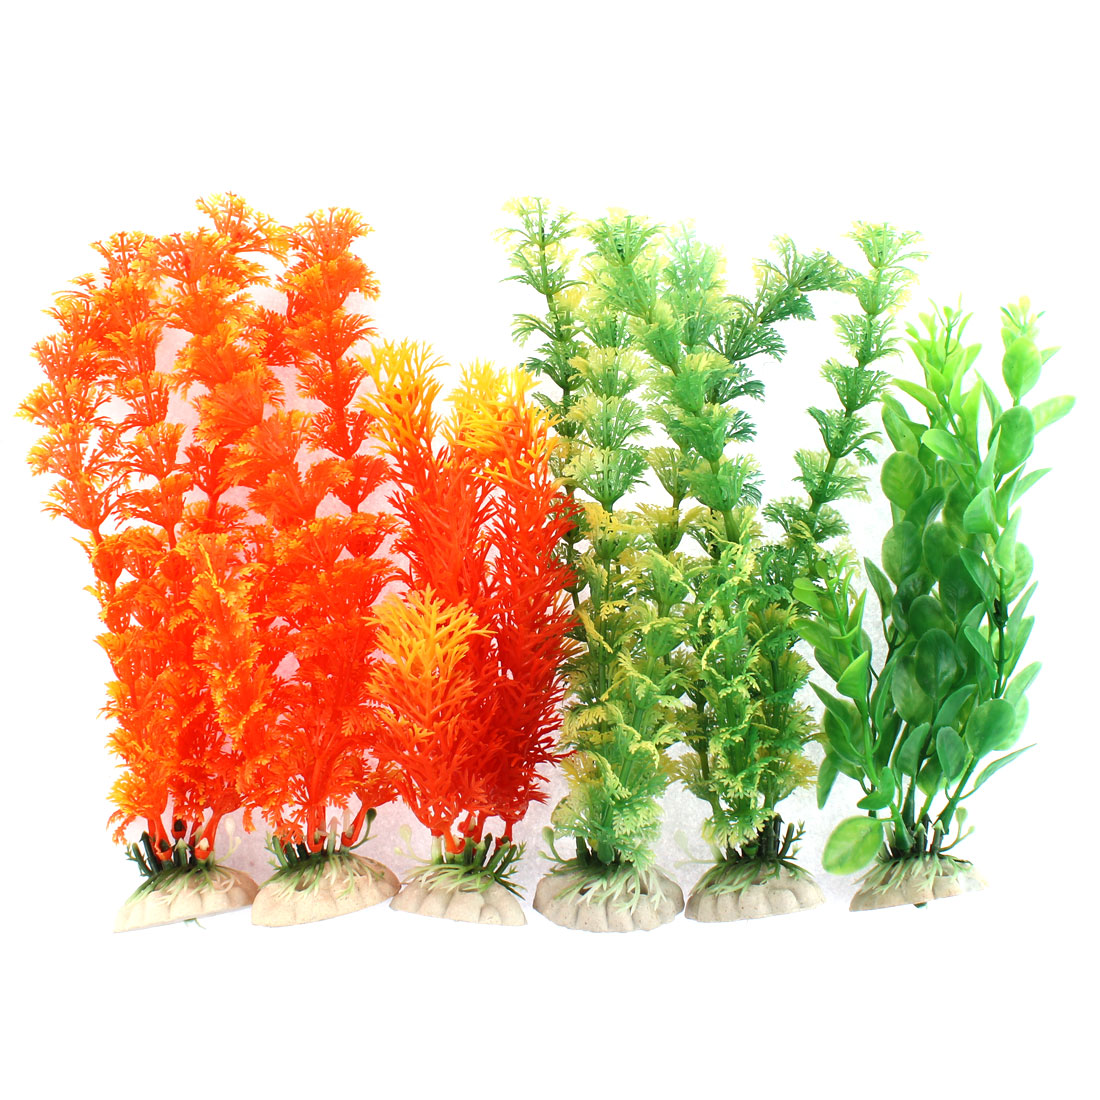 Aquarium Plastic Artificial Aquatic Plant Decor 6 in 1